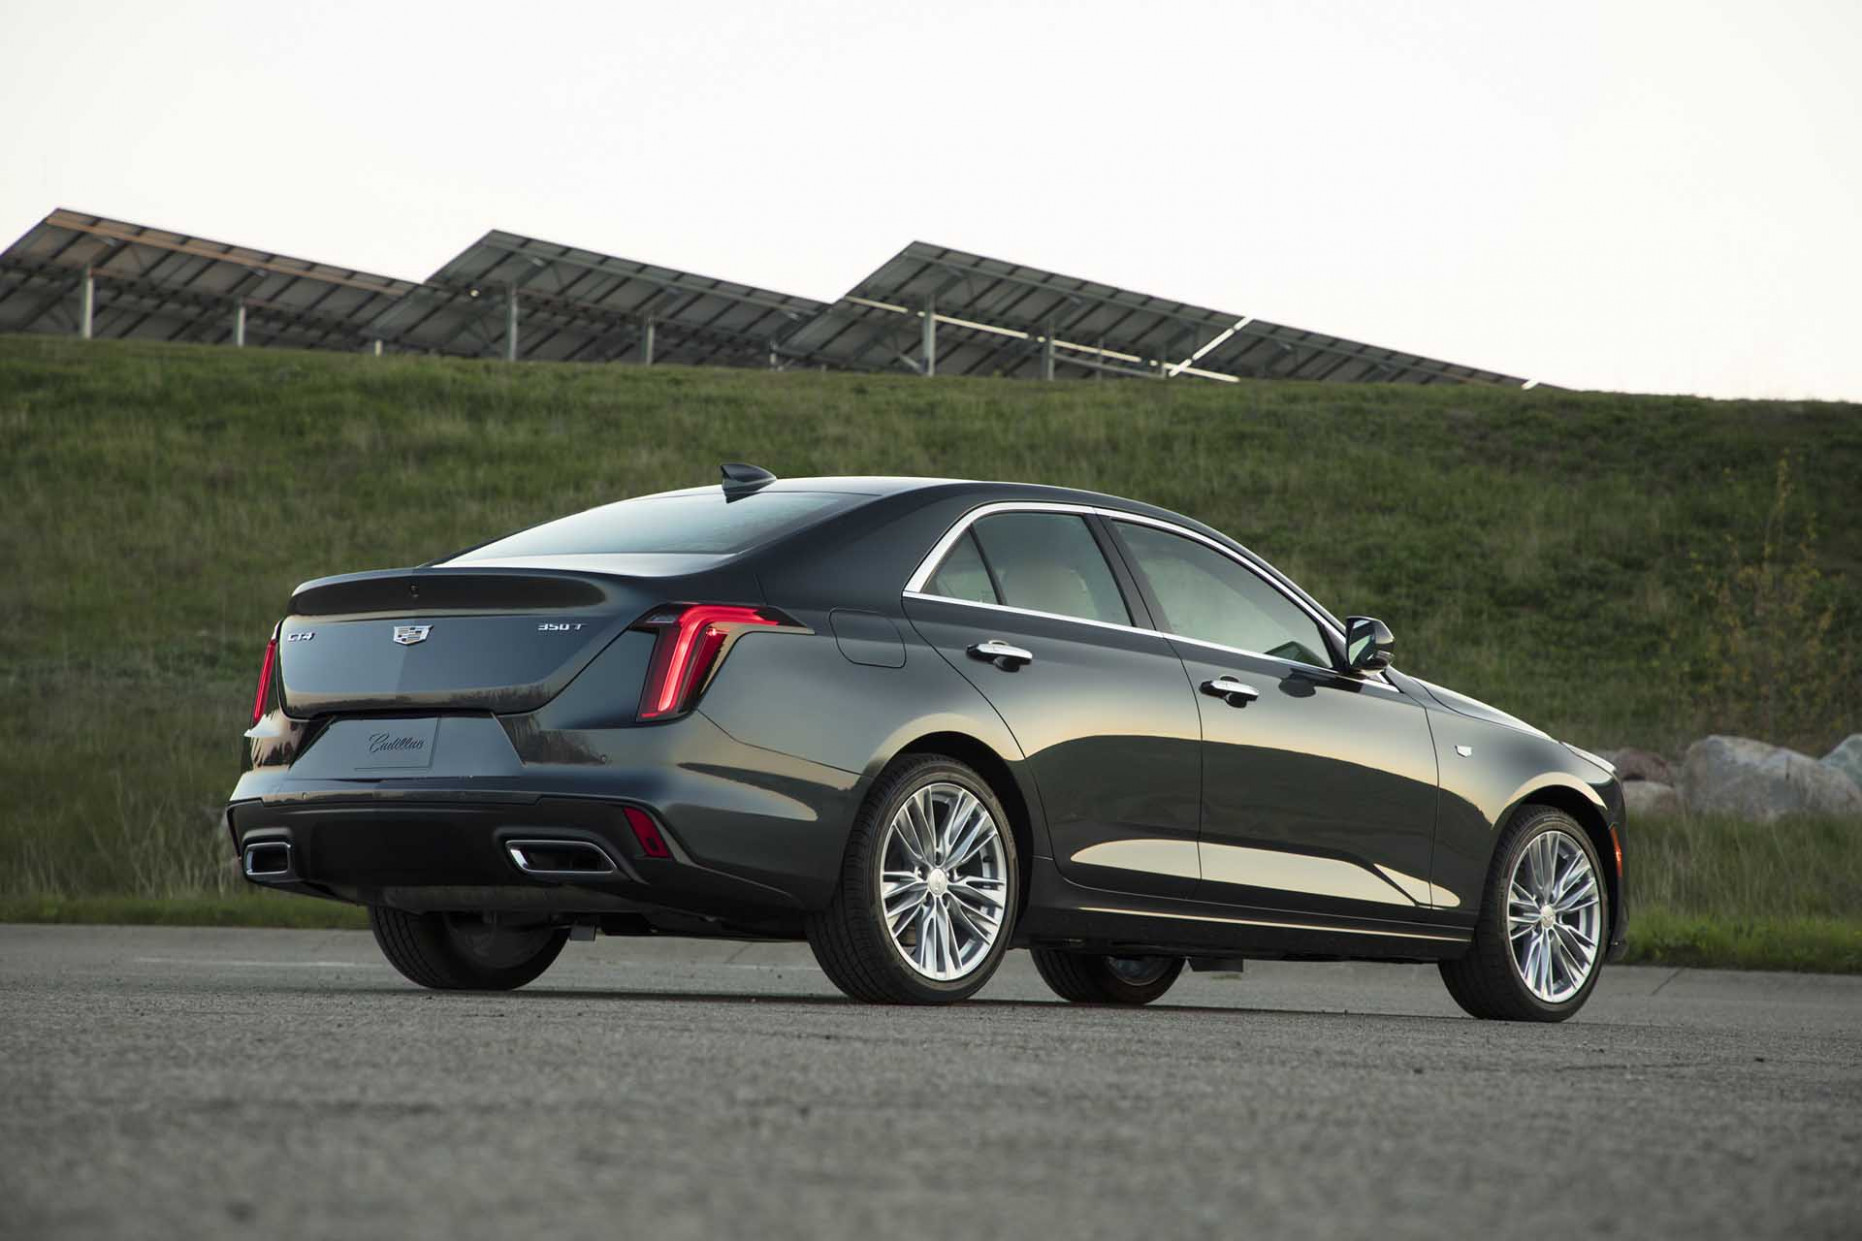 6 Cadillac CT6 Review, Ratings, Specs, Prices, and Photos - The ...